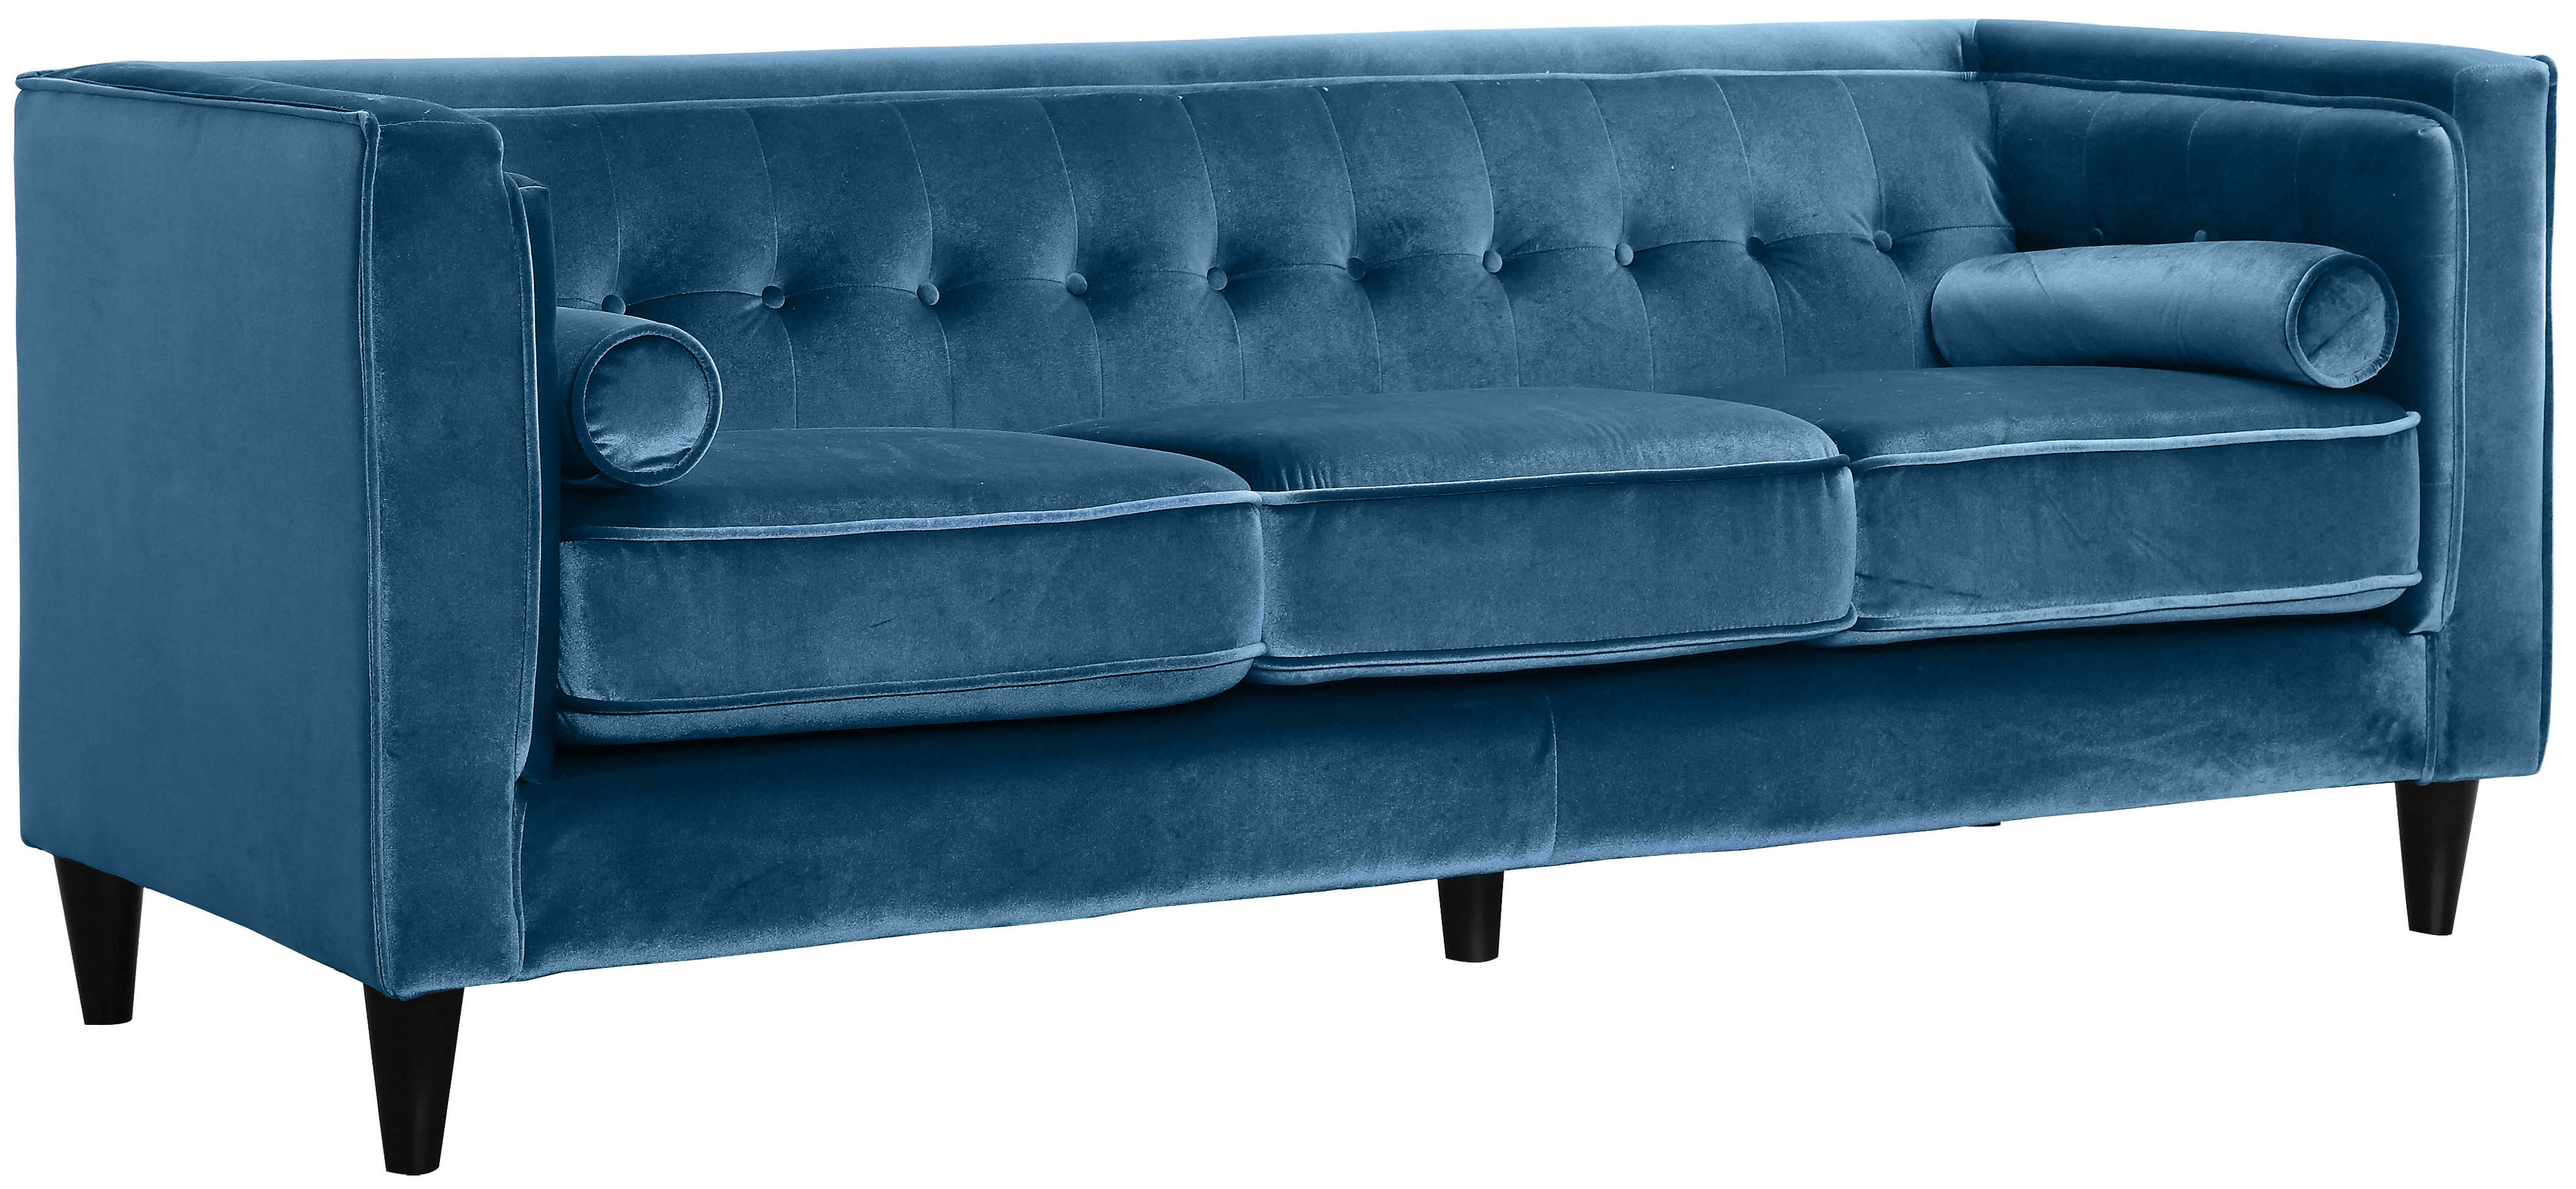 Meridian Furniture Taylor Light Blue Velvet Sofa The Classy Home